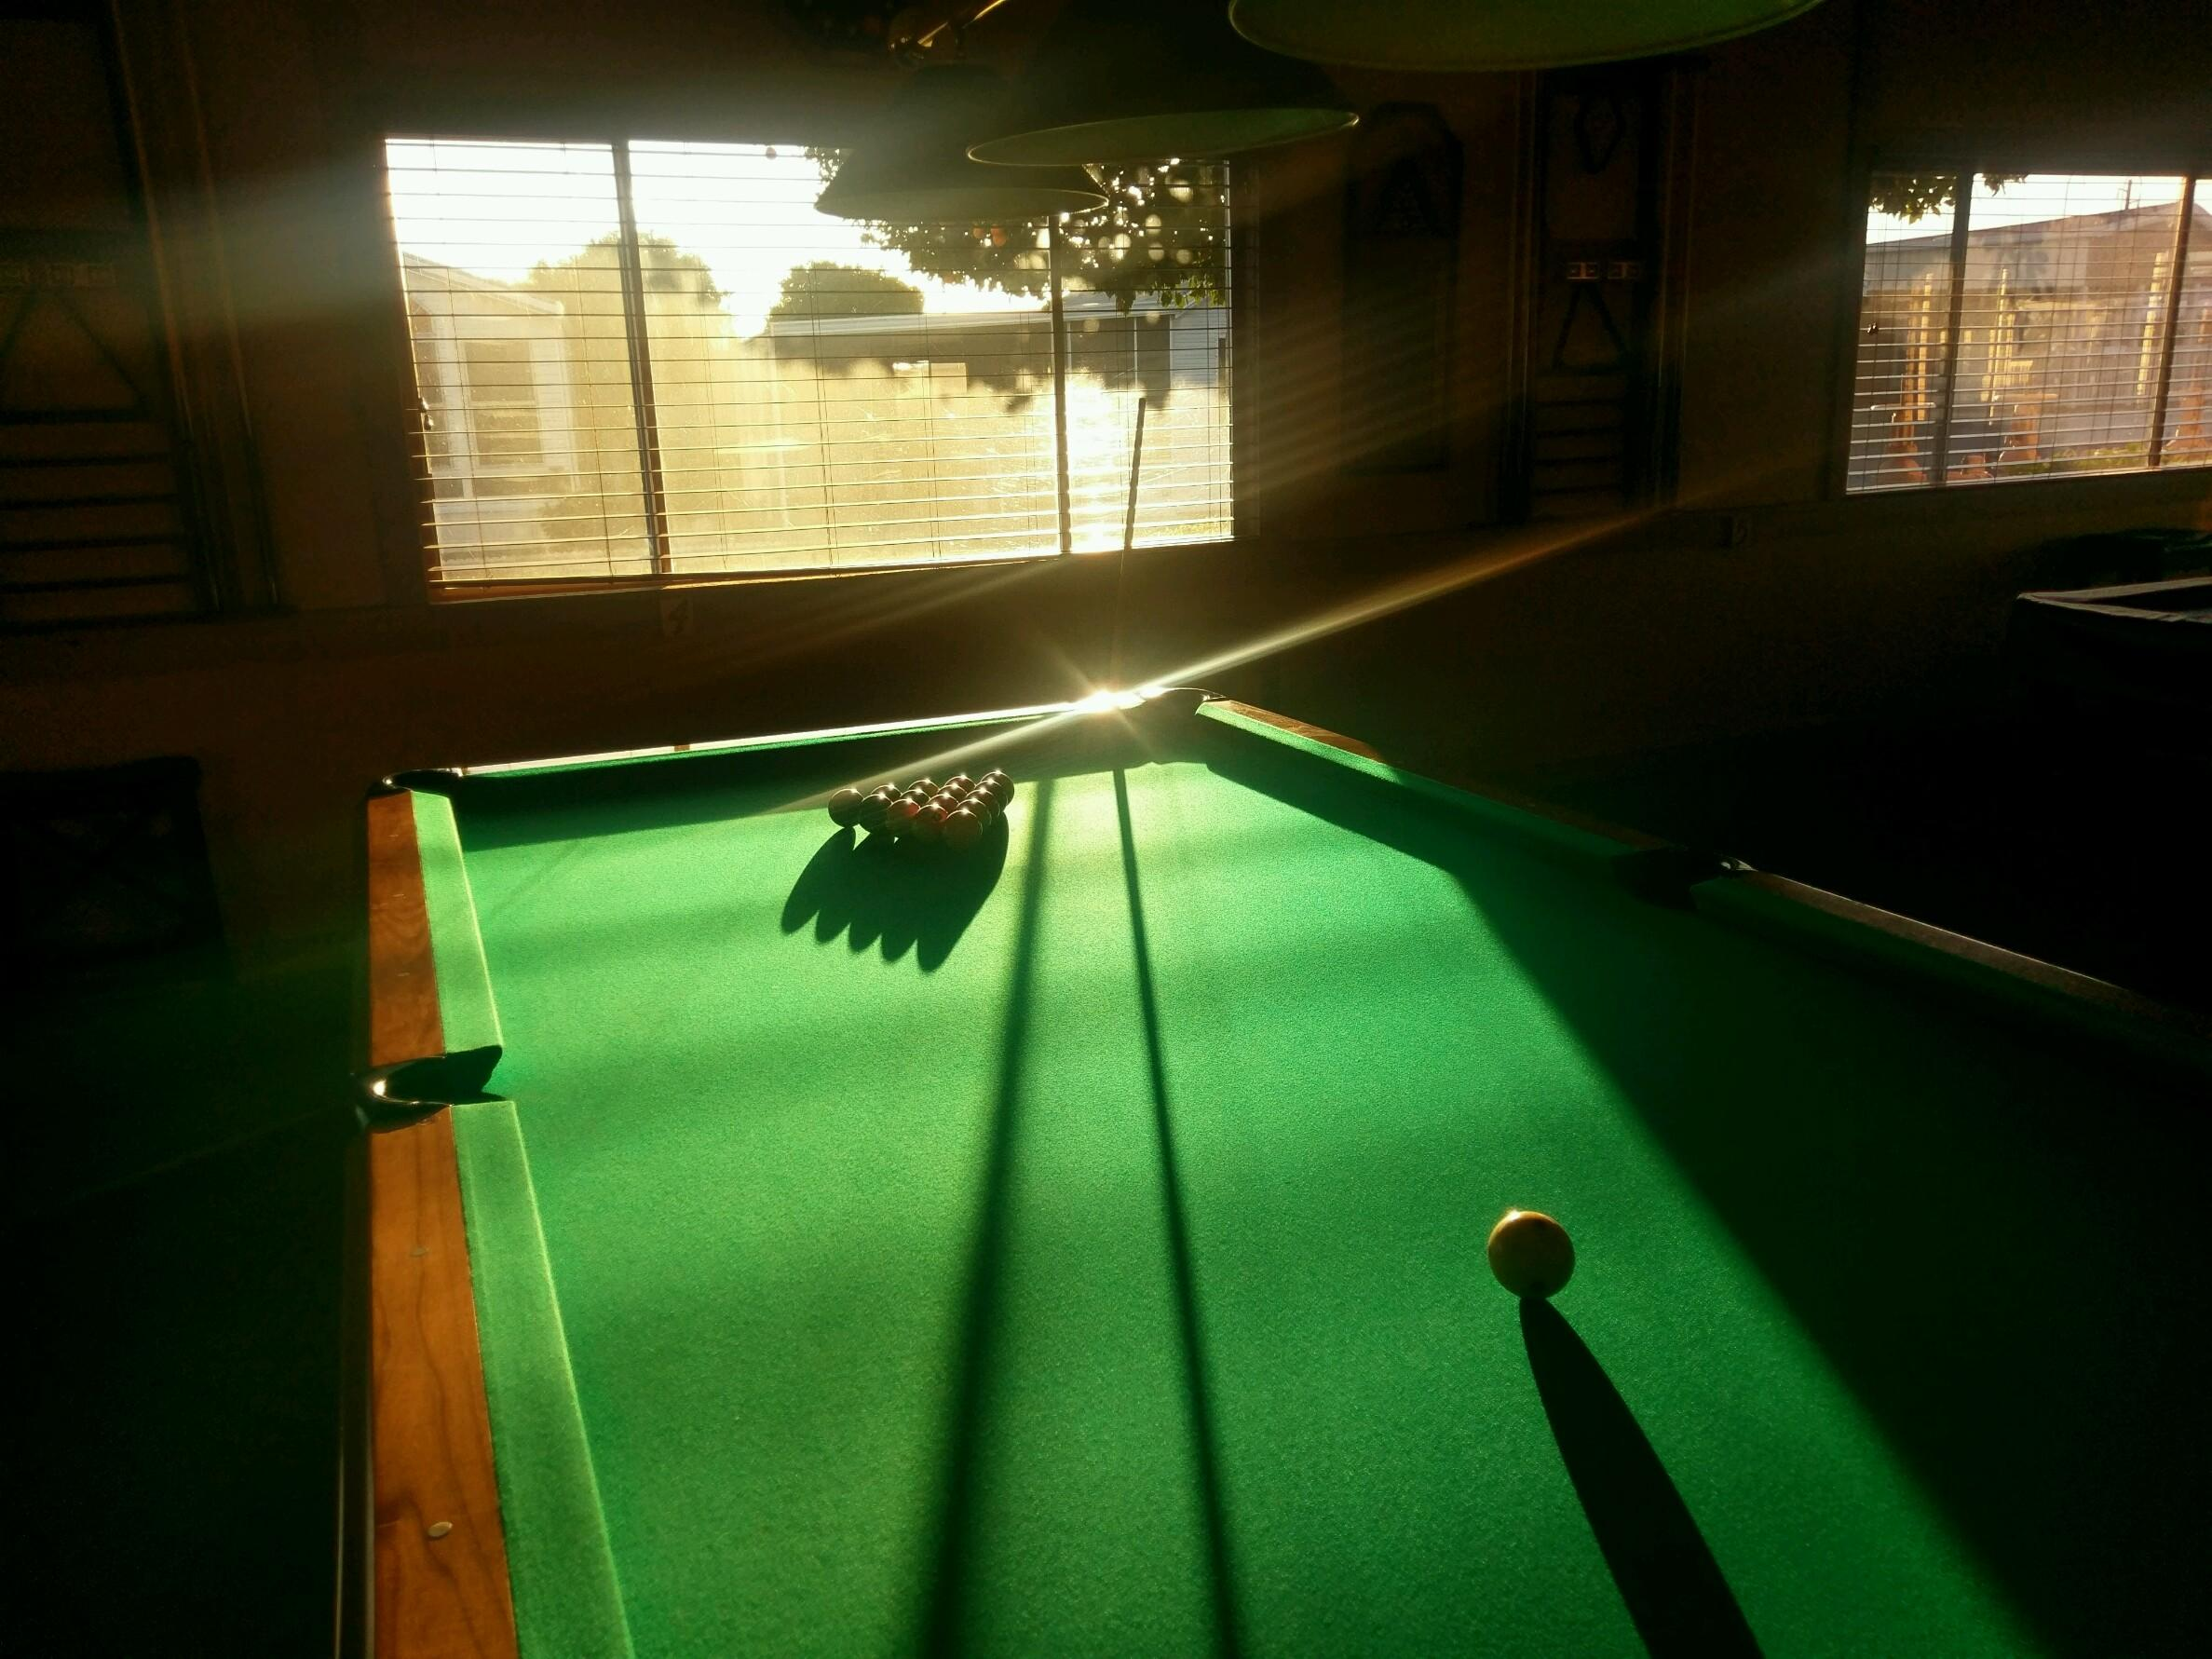 pool table picture.jpeg